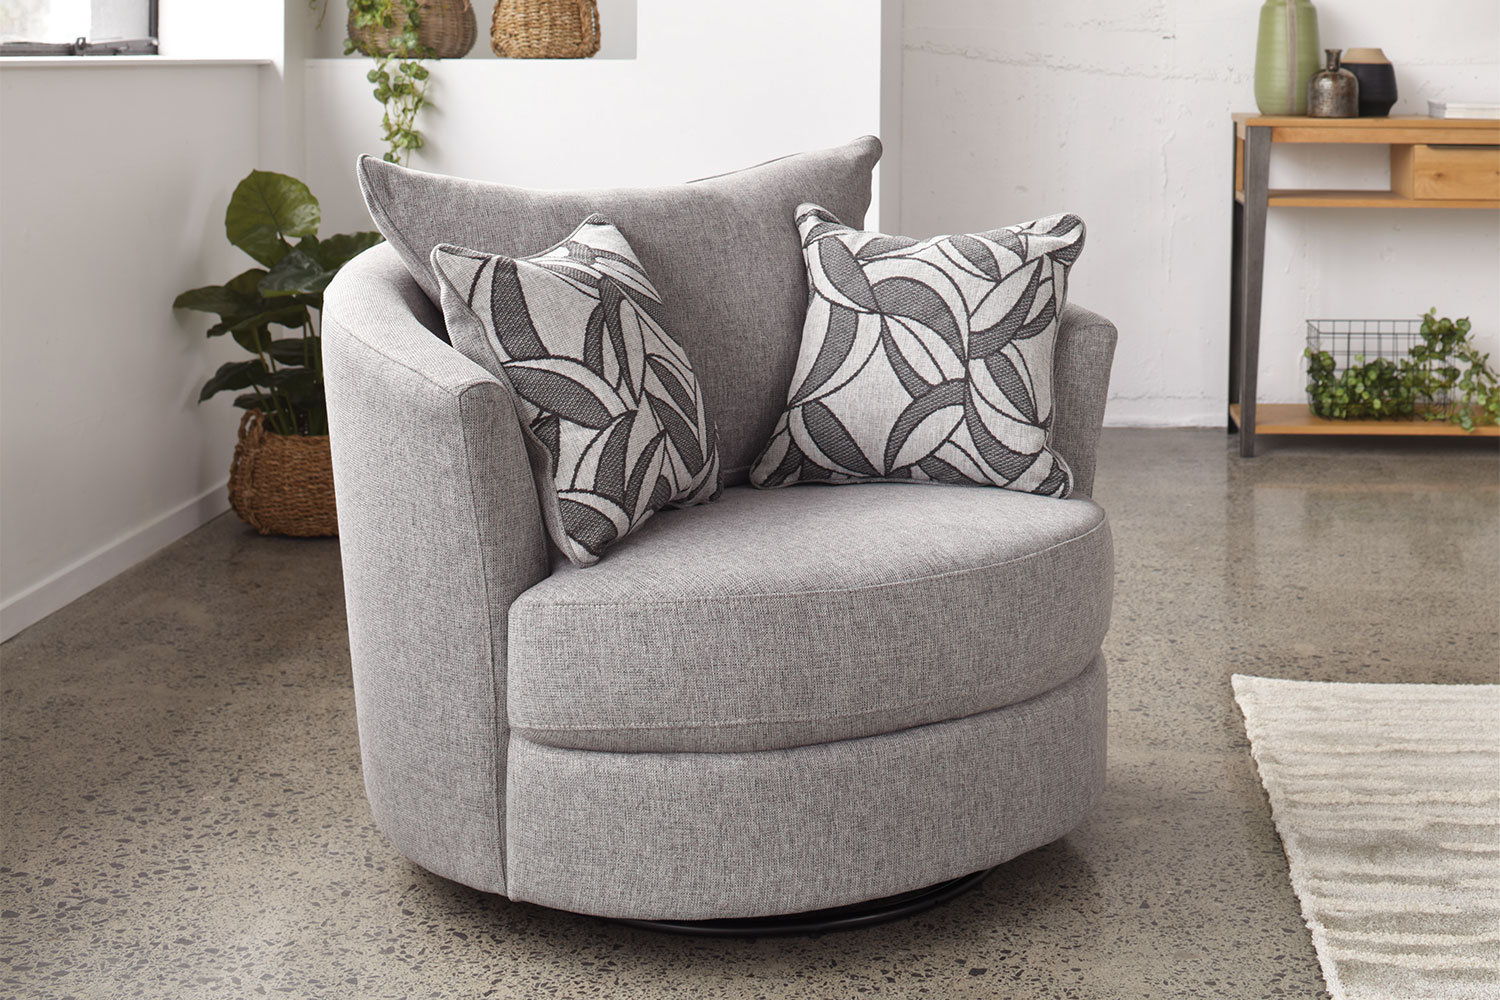 swivel chair small bird knoll greystone fabric harvey norman new zealand